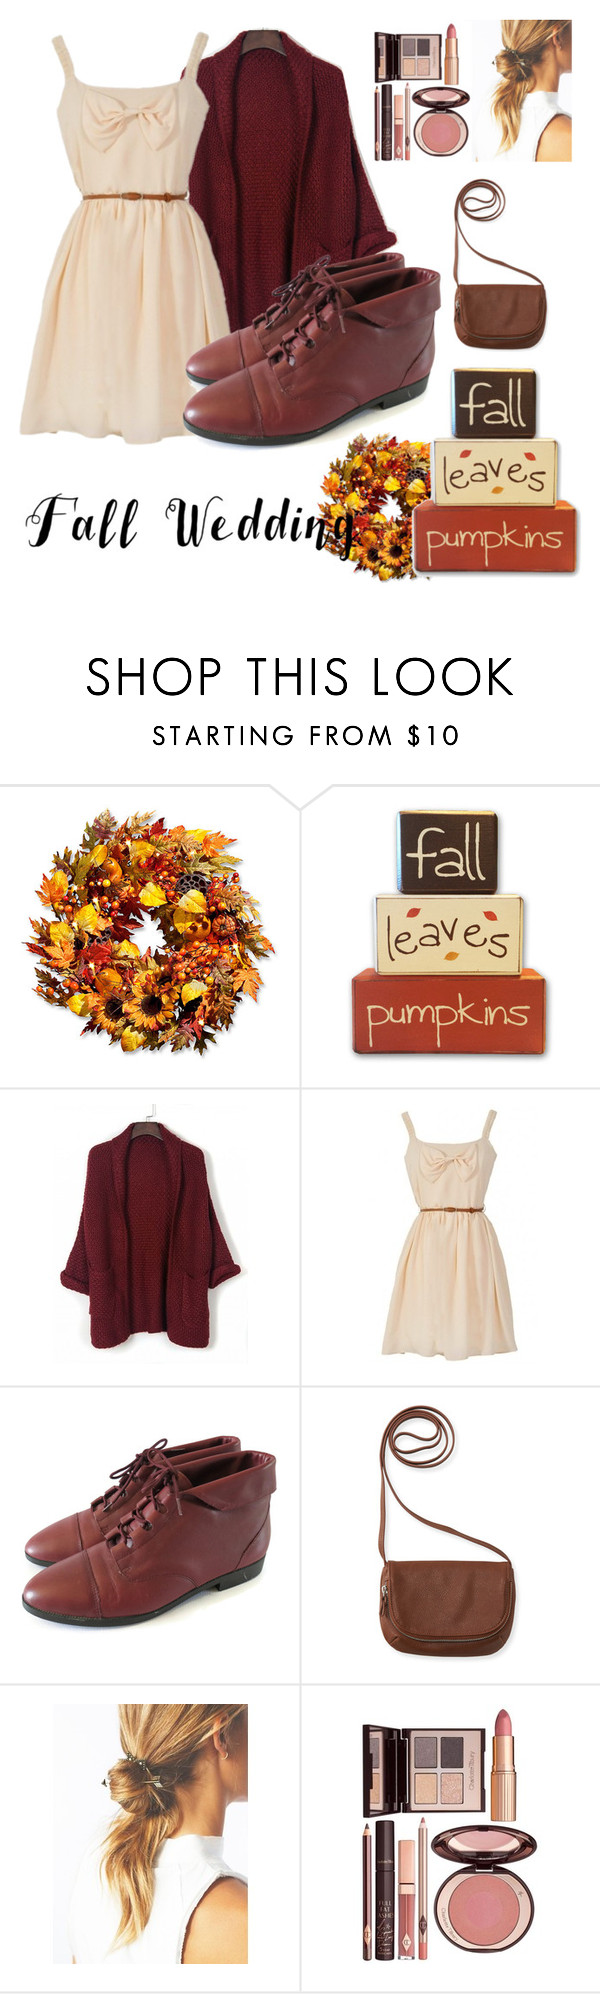 """""""Cozy"""" by francenefashion ❤ liked on Polyvore featuring Improvements, Aéropostale, Charlotte Tilbury and fallwedding"""